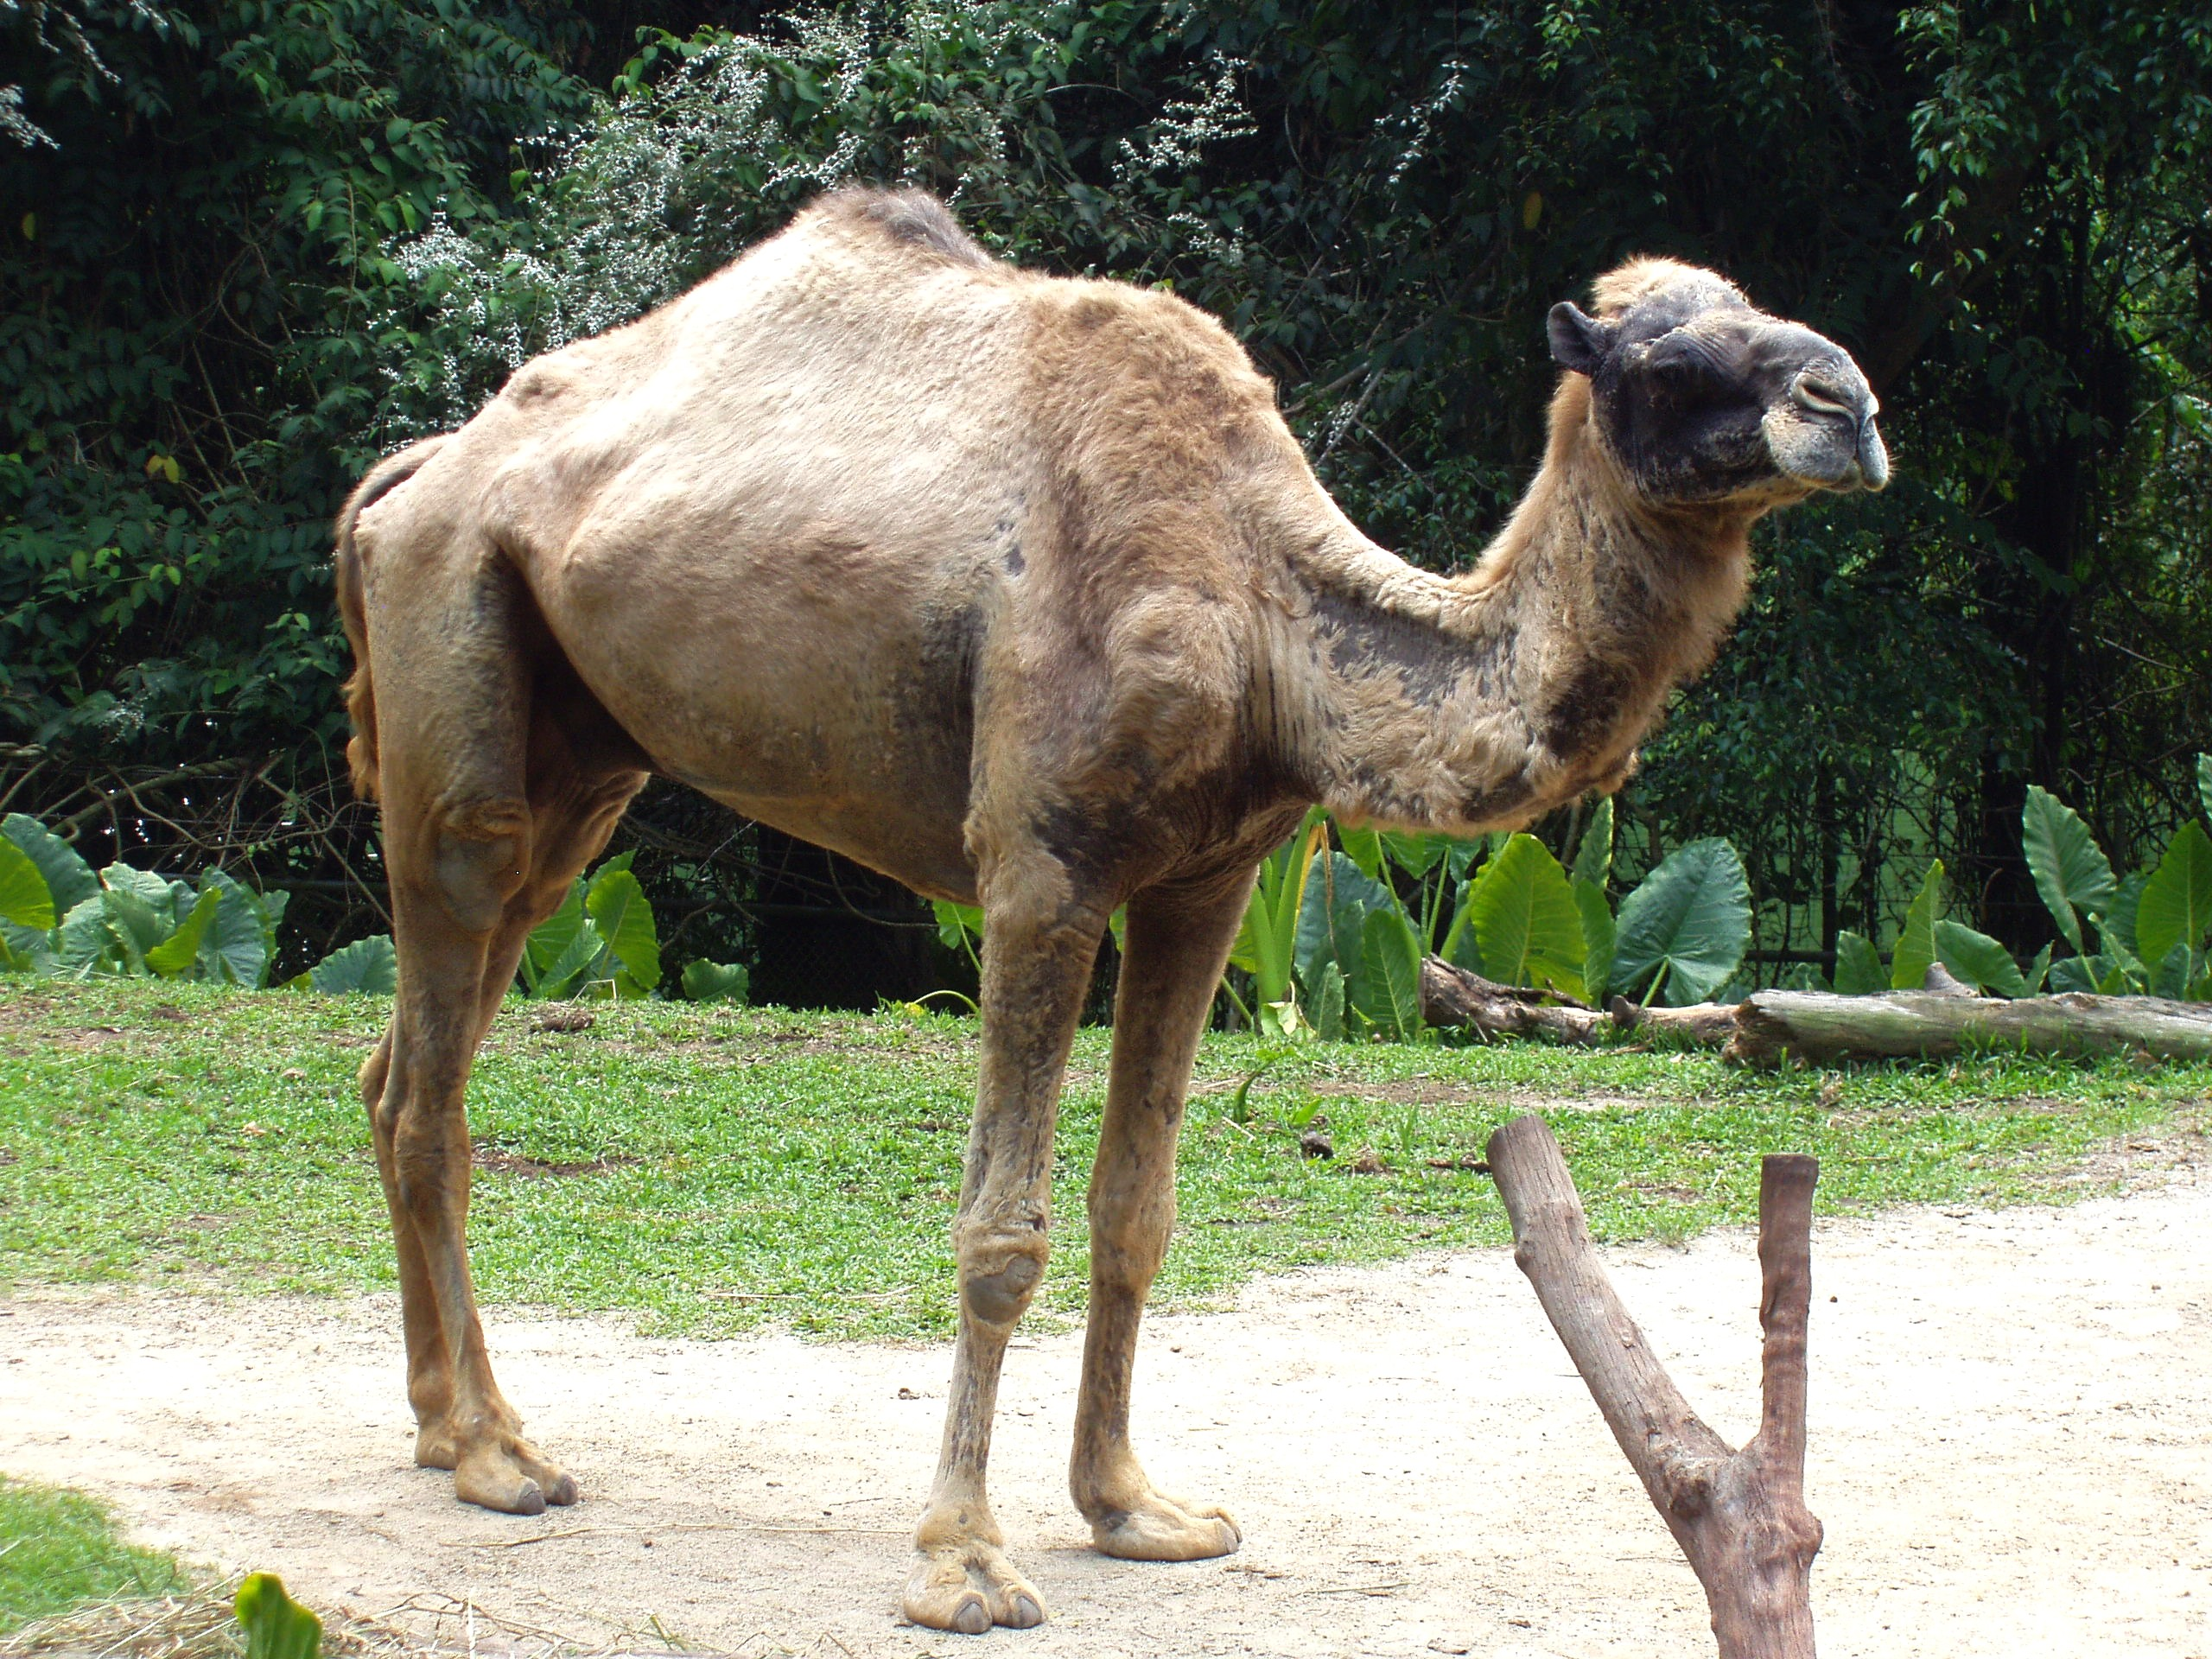 A camel standing in profile